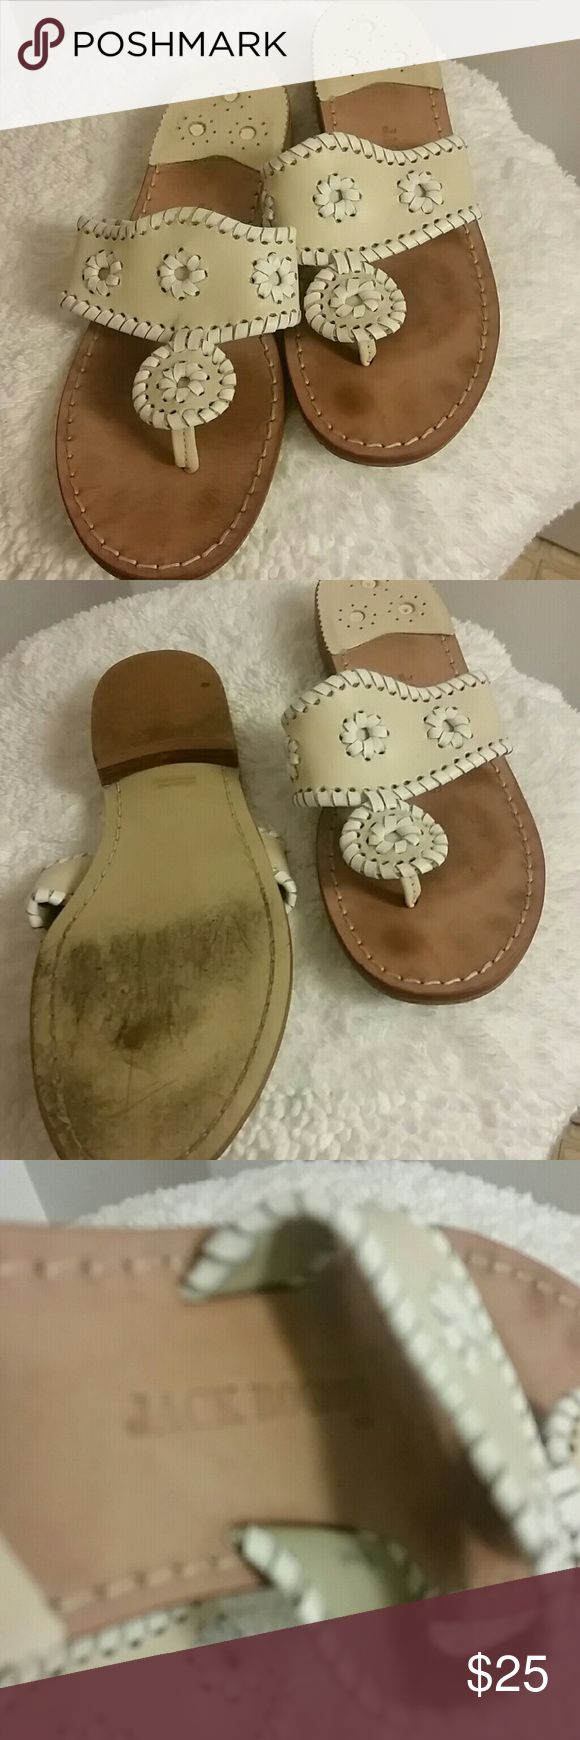 Jack Rodgers sandals Cream leather  oervious loved tong sandal. With woven design leather upper I believe to be 7- 7 1/2 Jack Rogers Shoes Sandals